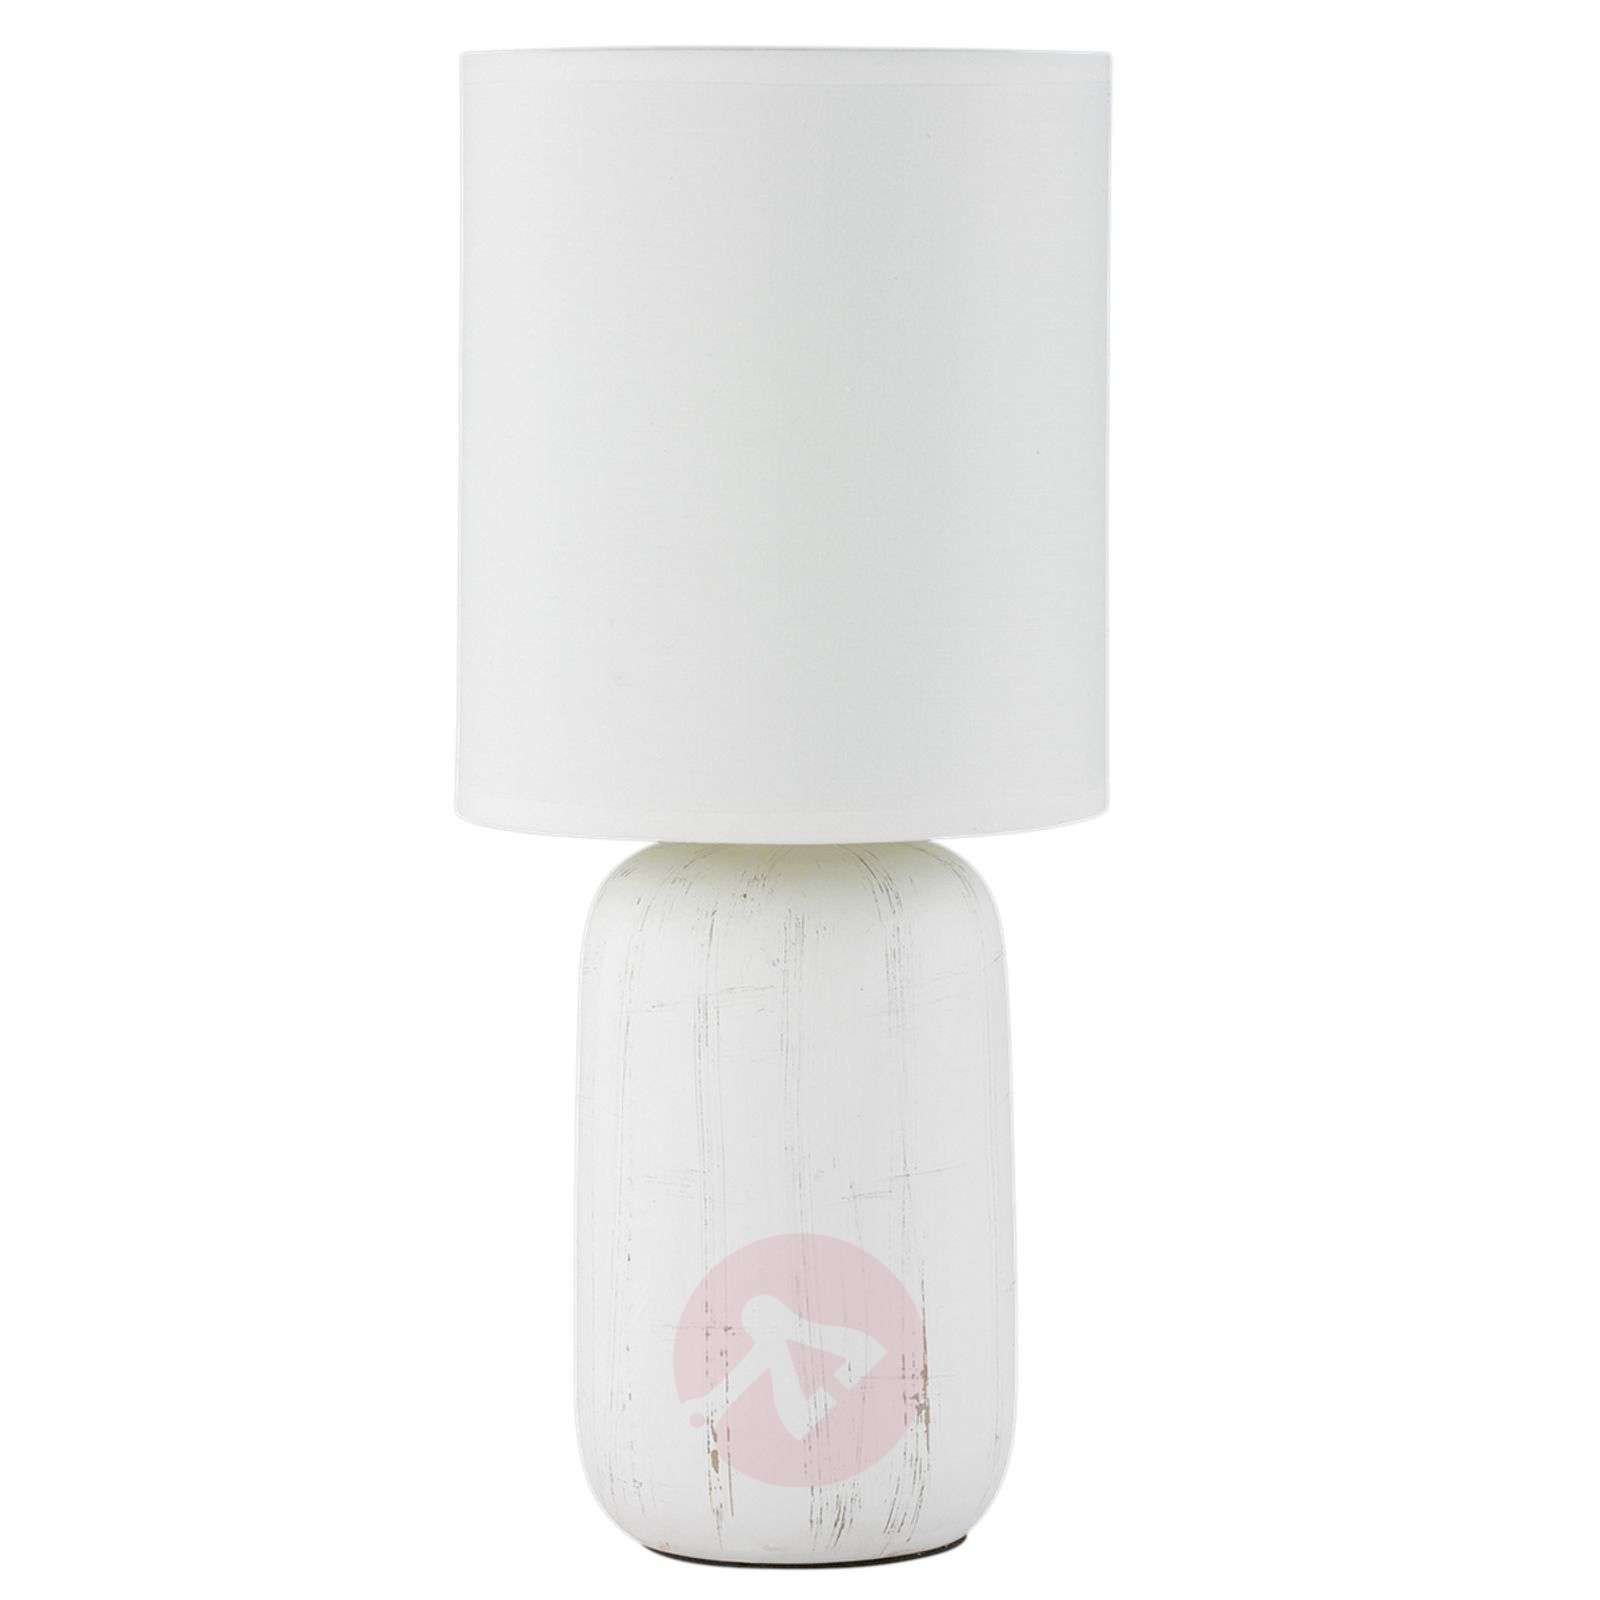 Ceramic table lamp Clay with fabric lampshade-8029185-01